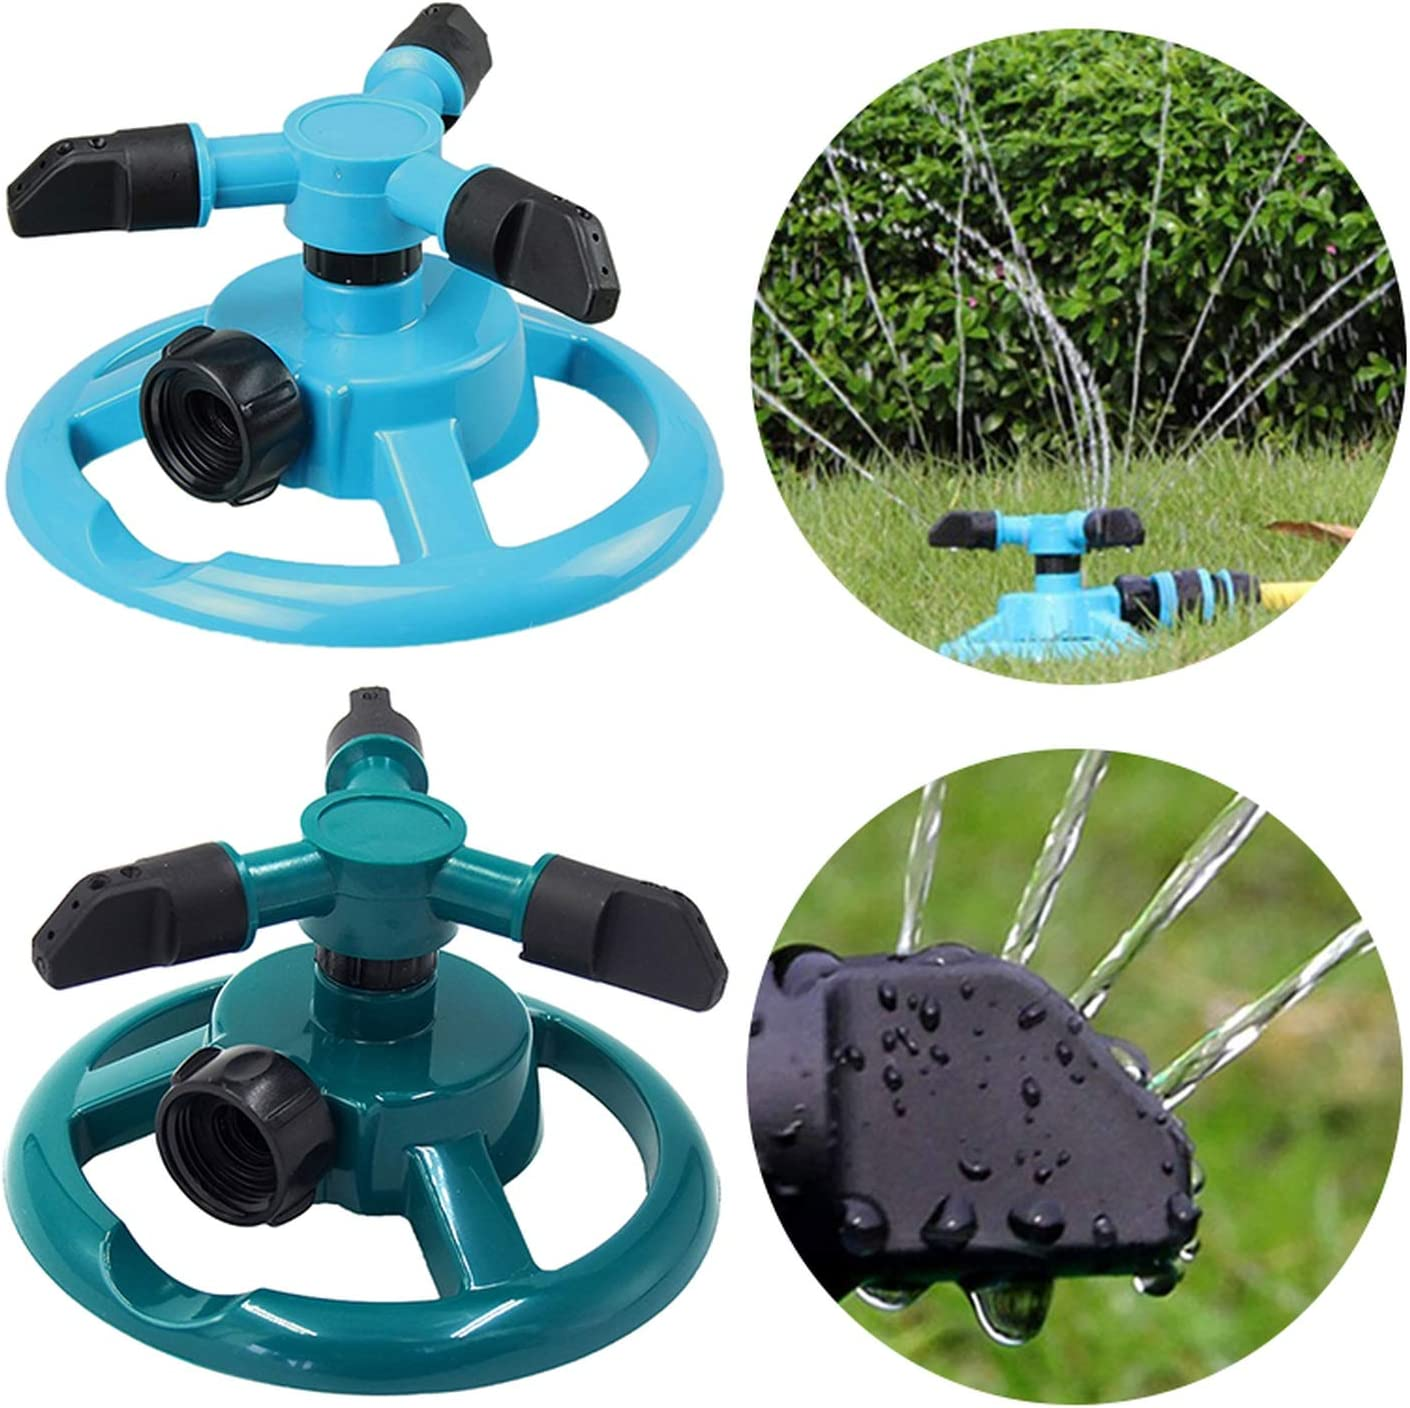 Water Sprinkler 360 Degree Circle Rotating  Automatic Watering Garden Grass 1 pc